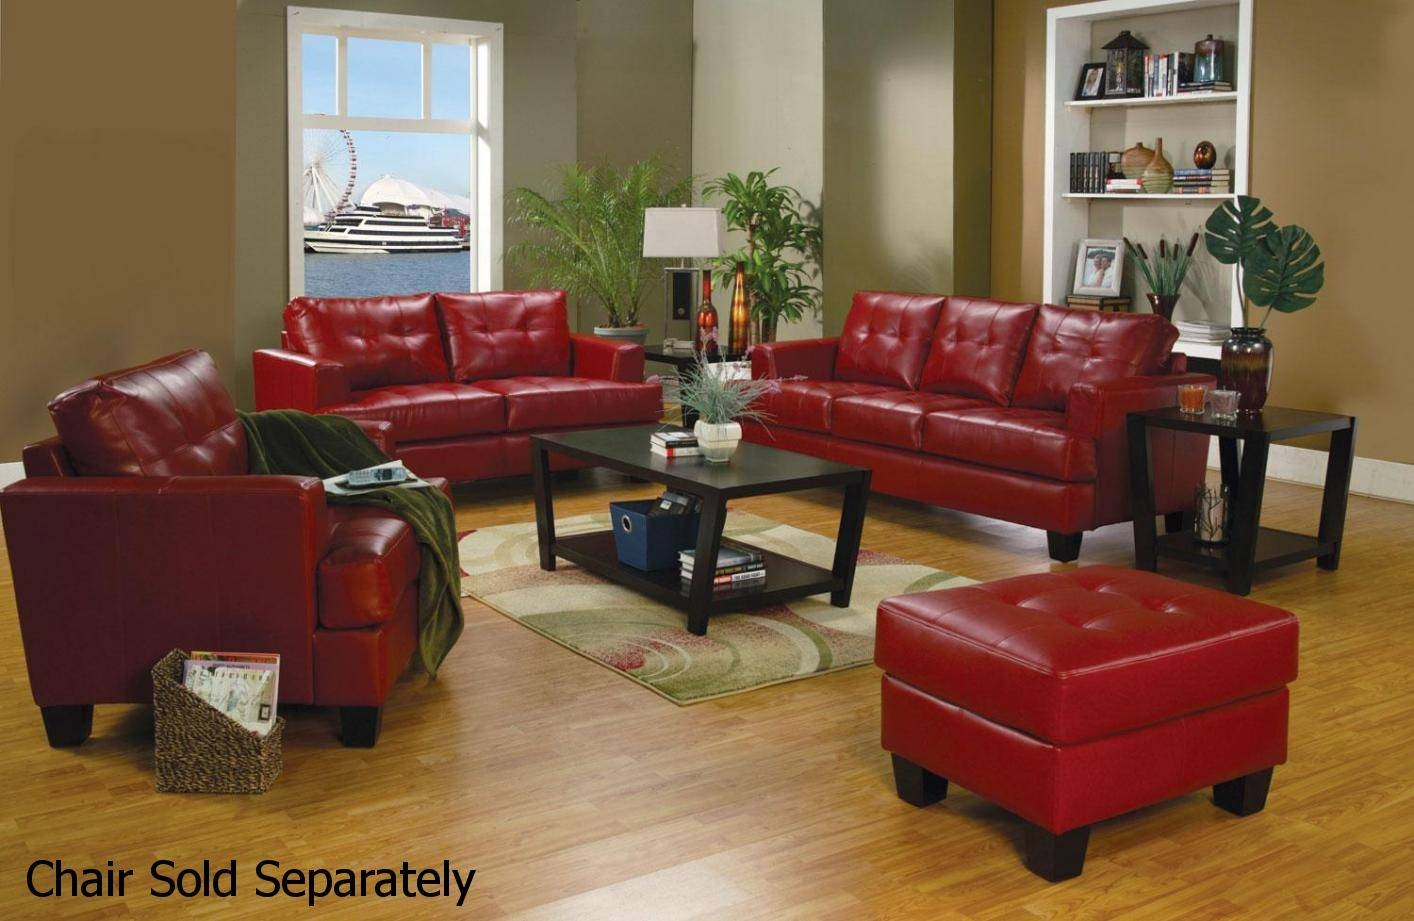 Fascinating Red Leather Sofas Pictures Decoration Ideas - Surripui intended for Dark Red Leather Sofas (Image 5 of 15)